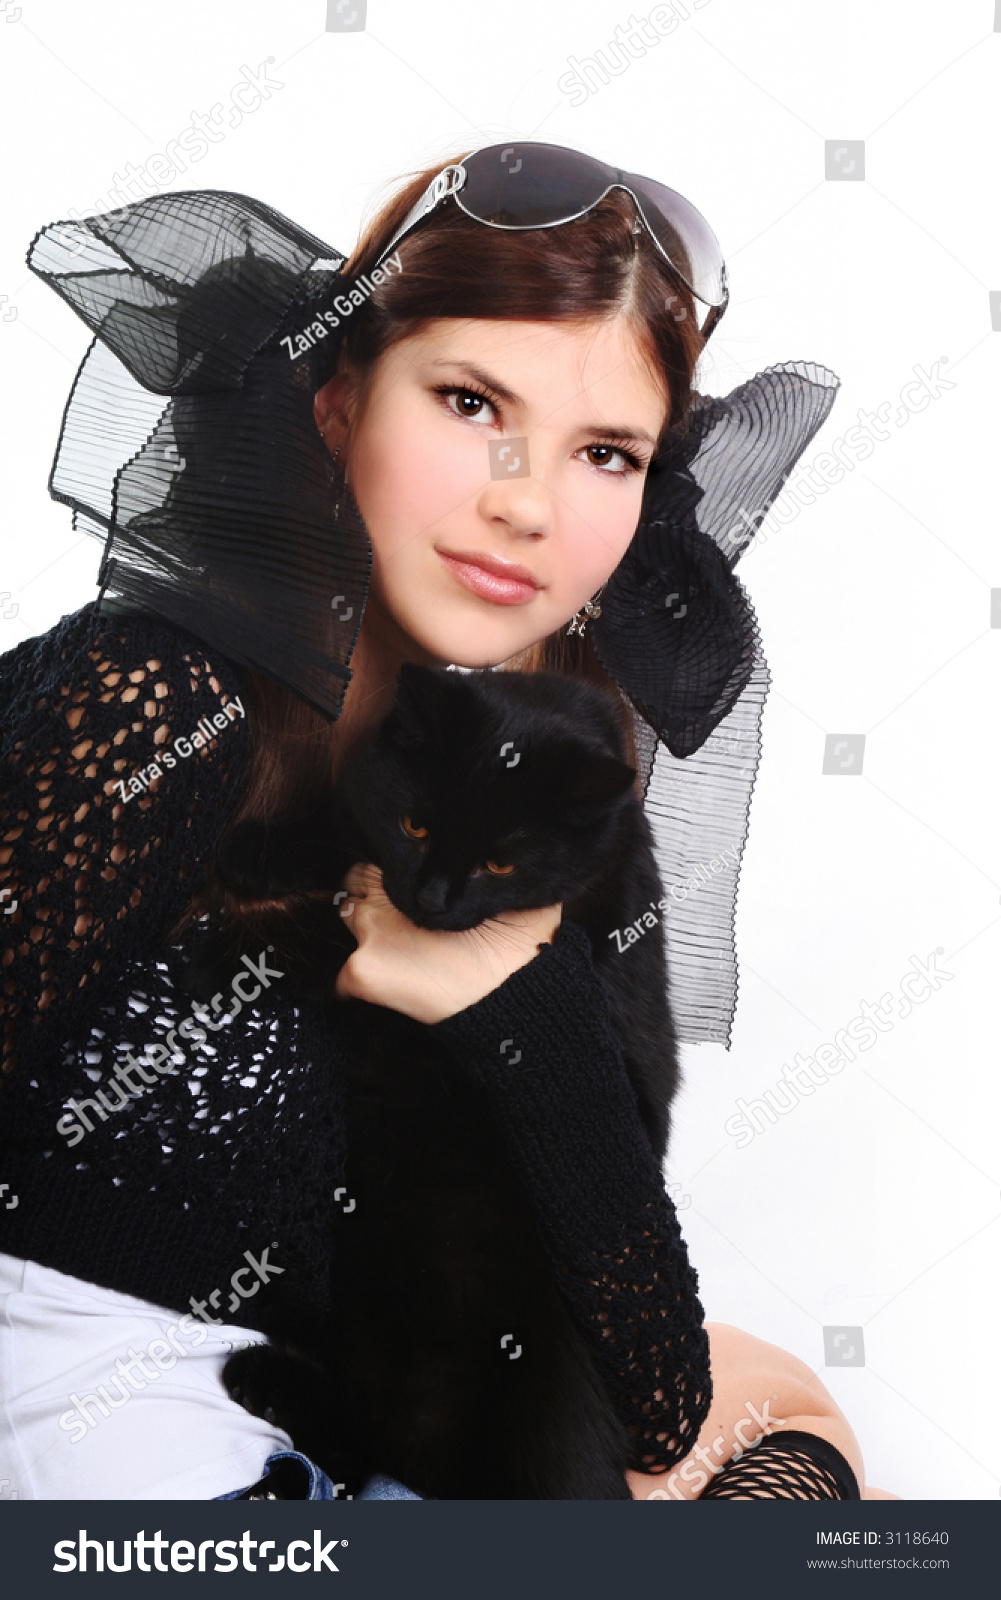 young pretty woman black pussy cat stock photo (100% legal